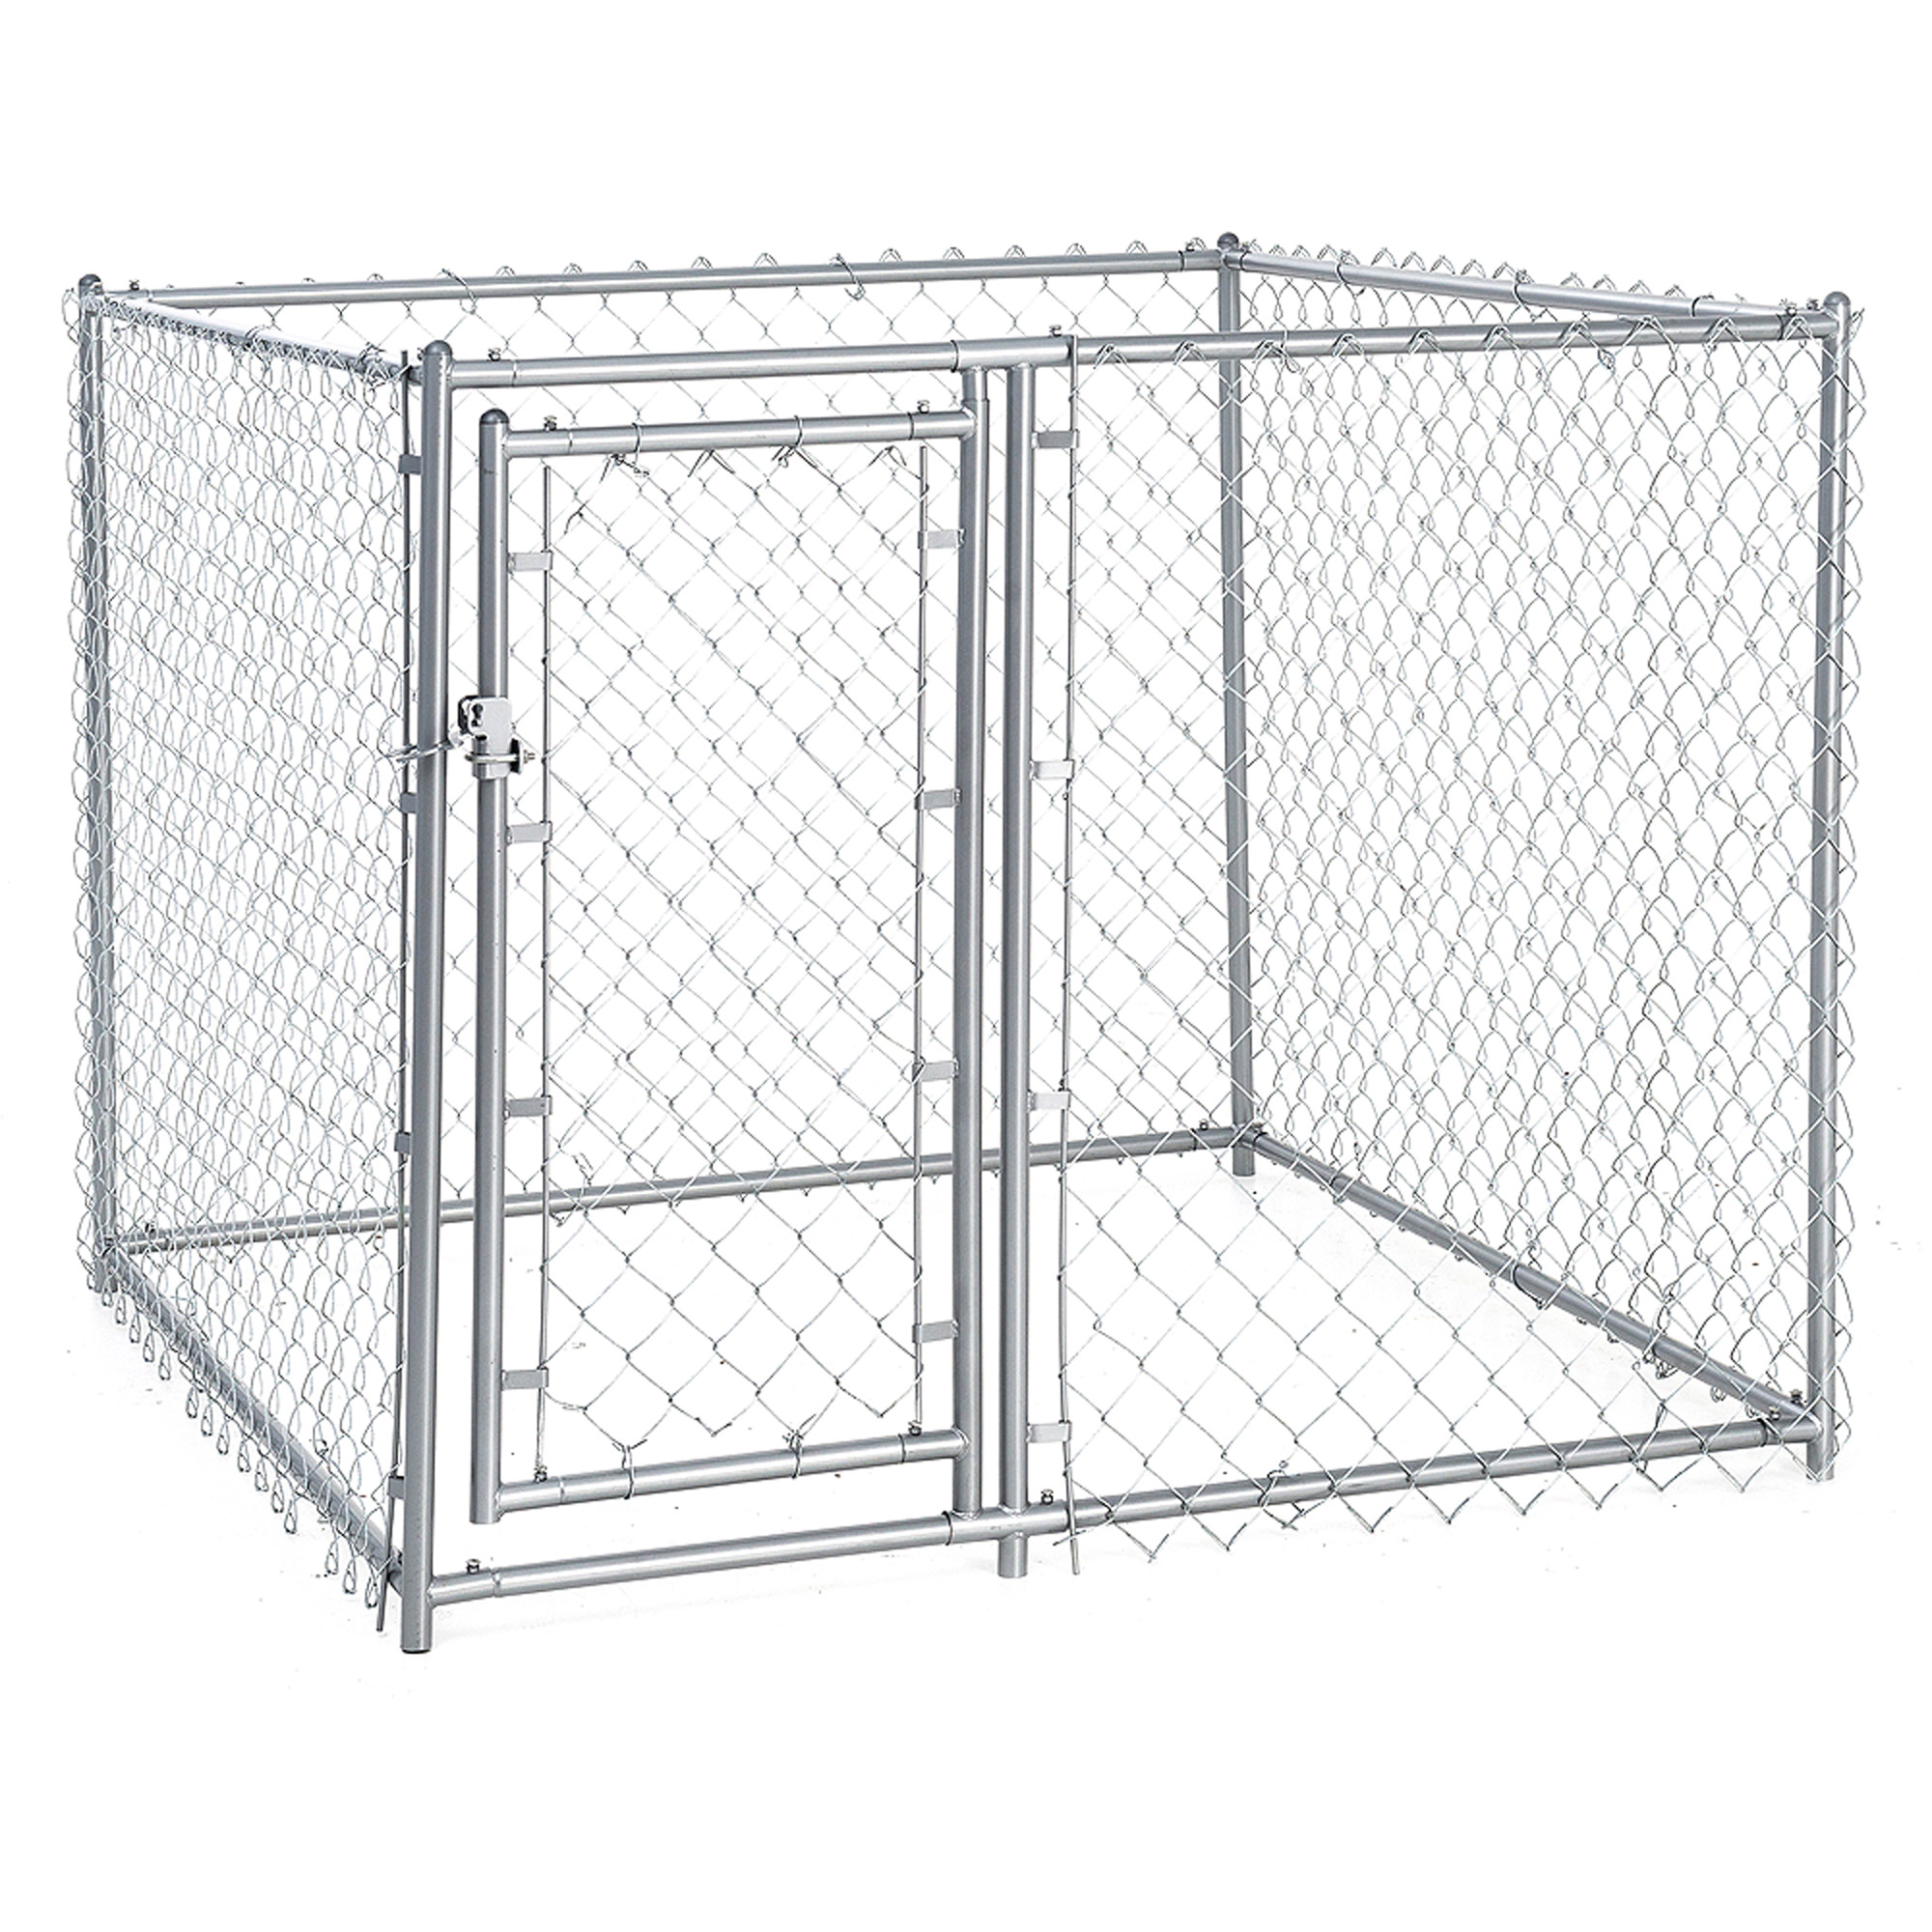 Lucky Dog Heavy Duty Dog Kennel 3 Run W Common Wall